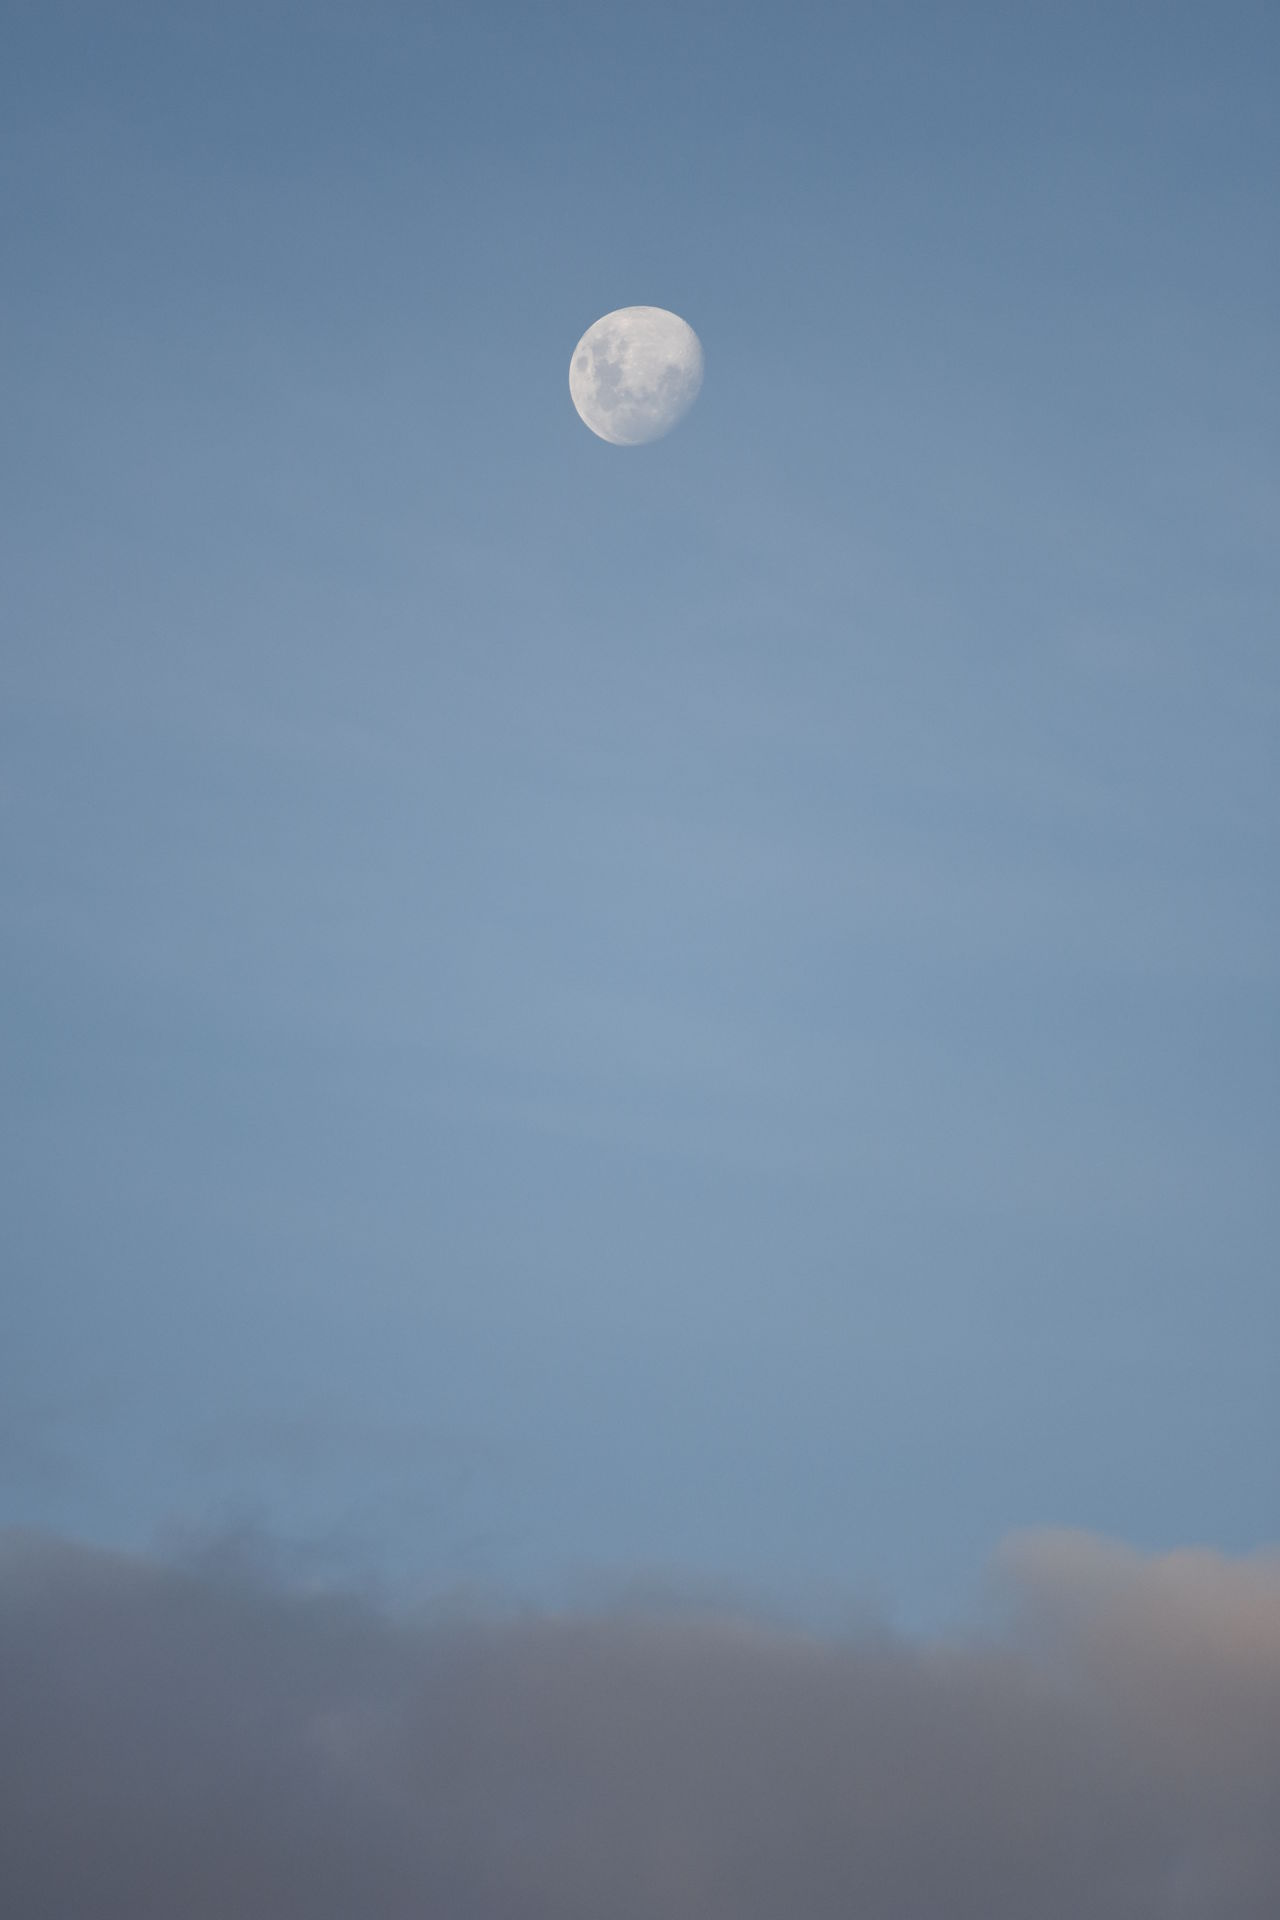 Moon Planetary Moon Low Angle View Moon Surface Sky No People Outdoors Nature Lua  Céu Nuvens Cloud